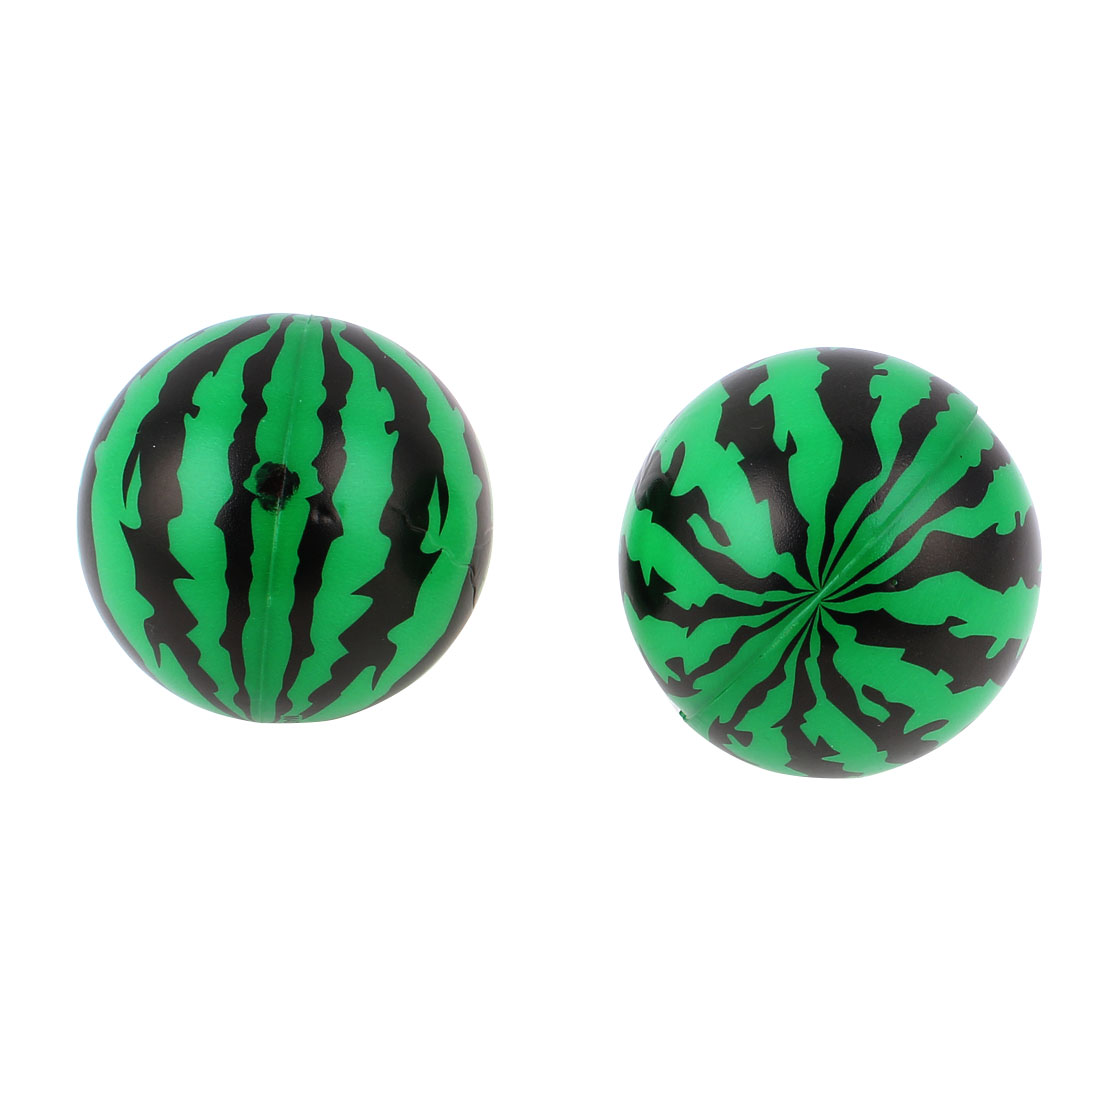 2pcs Green Foam Watermelon Shaped Hand Wrist Finger Exercise Stress Relief Therapy Squeeze Ball